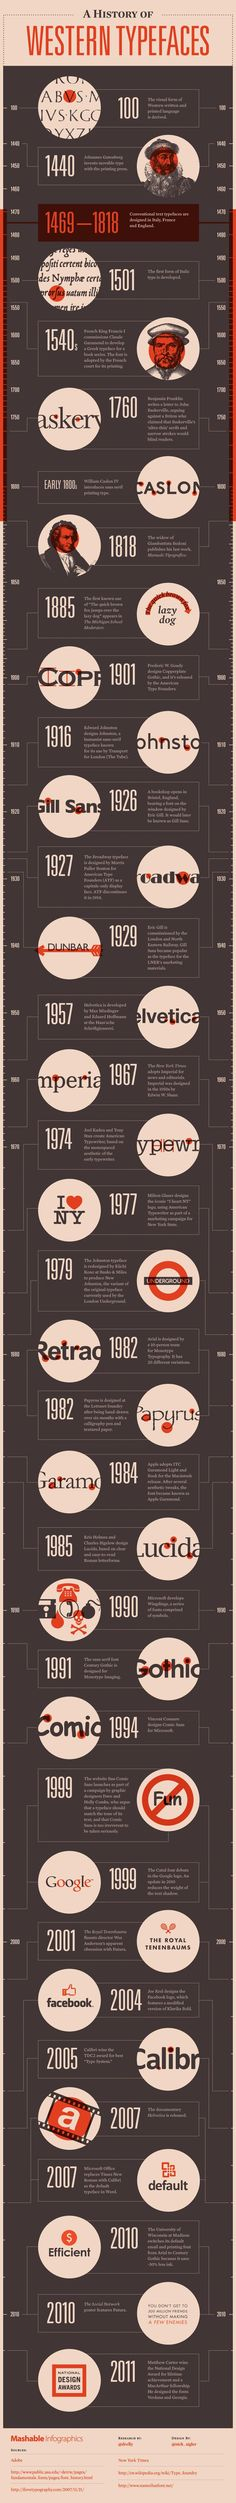 Infographic | A History of Western Typefaces